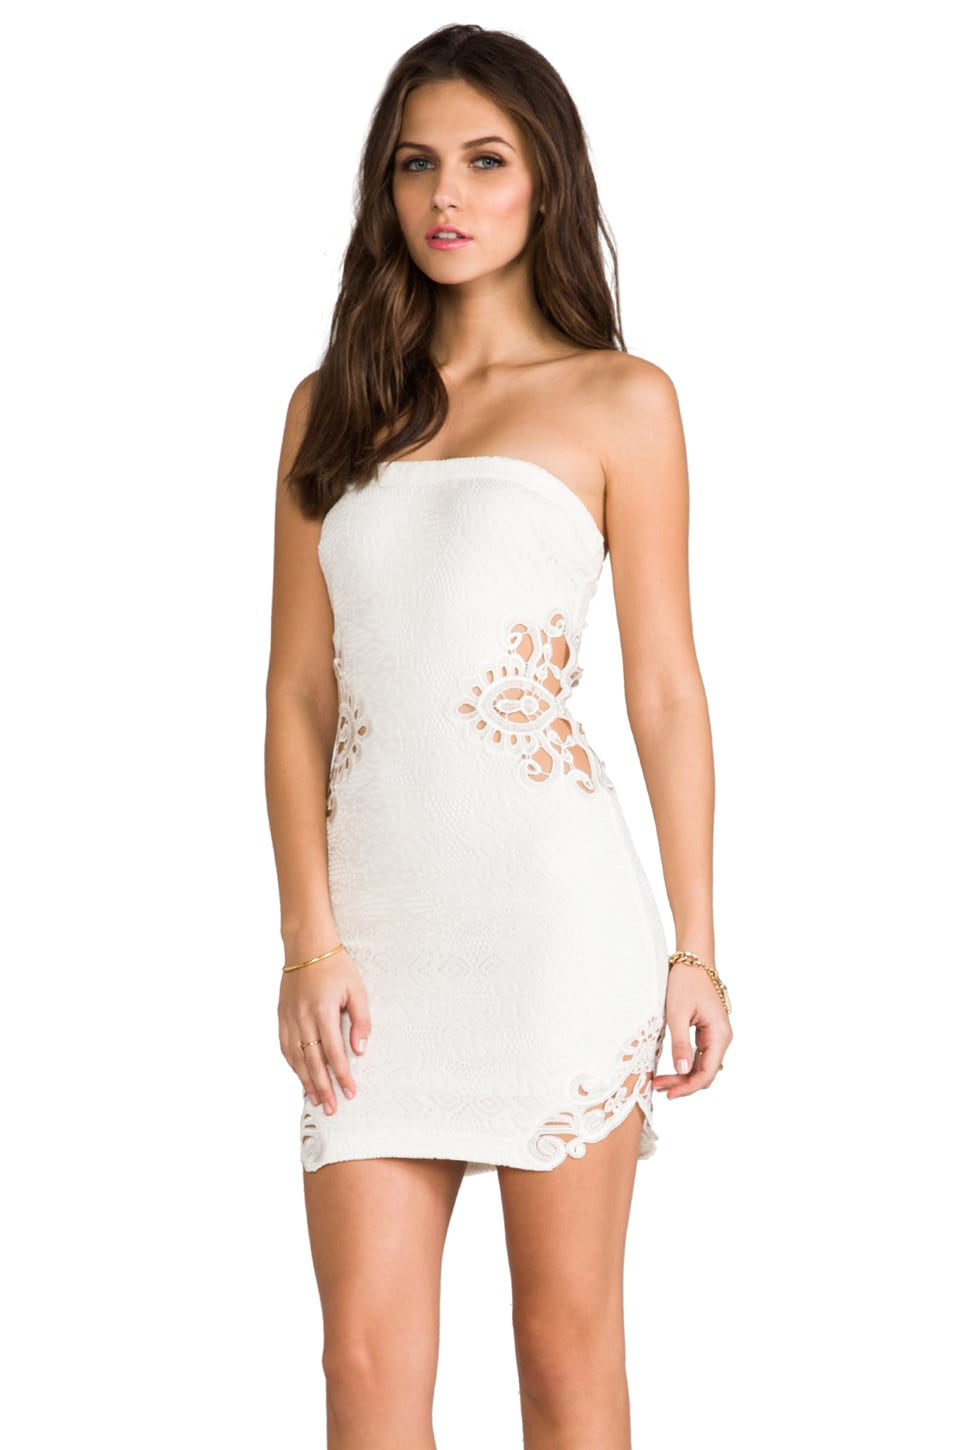 DRESS THE POPULATION Caitlyn Strapless Crochet Dress with Crochet Inserts in Ivory